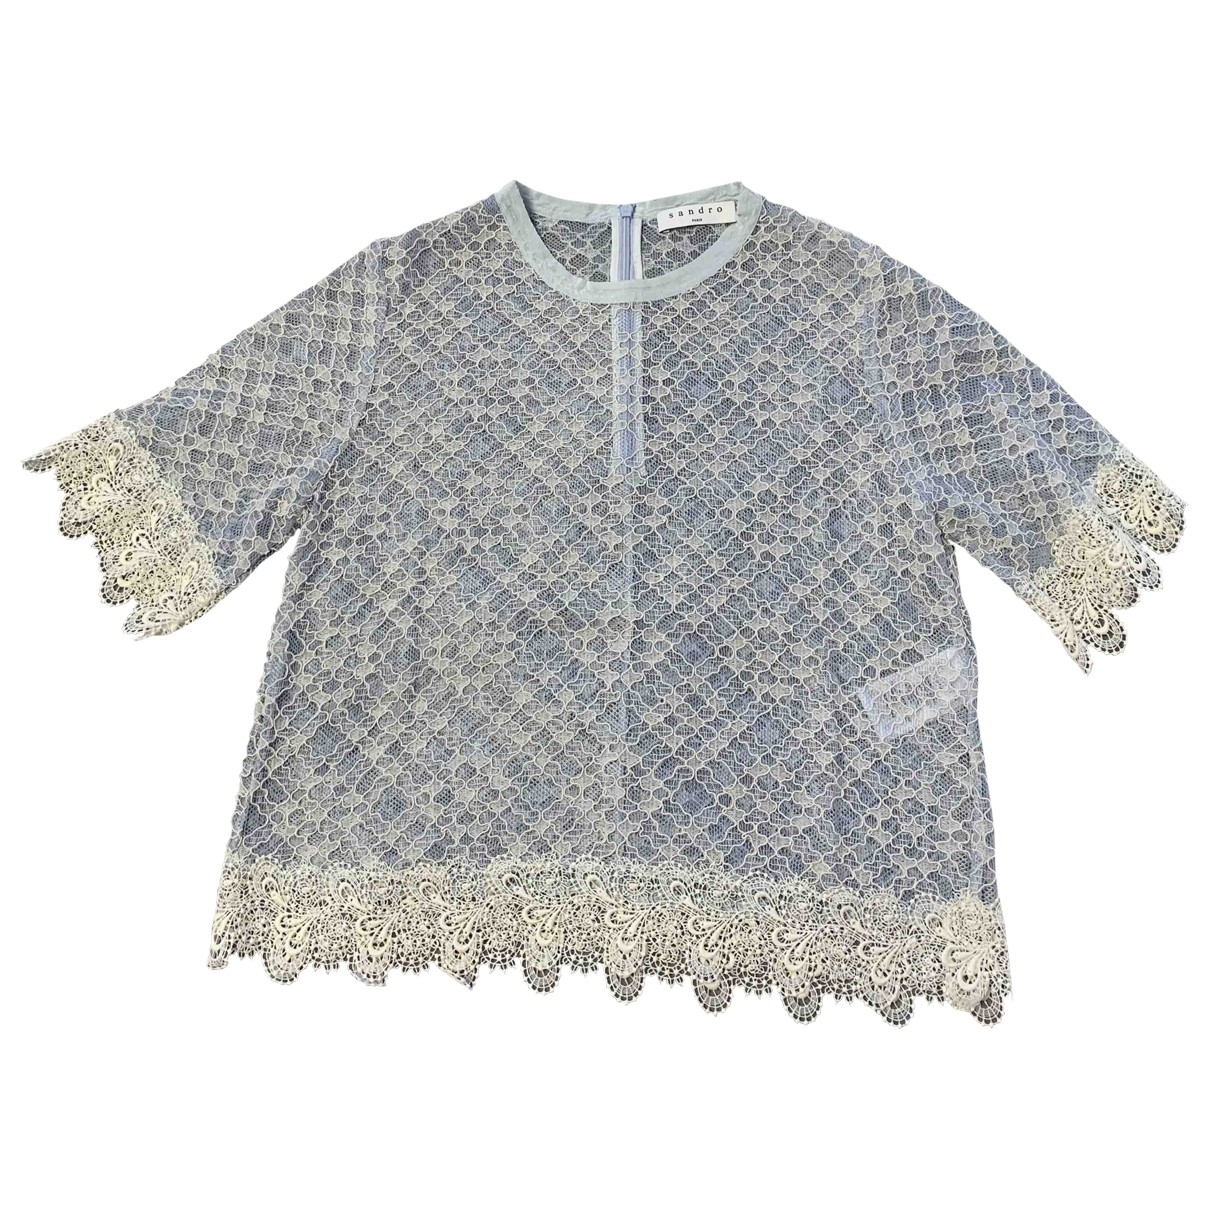 Sandro \N Blue Lace  top for Women 1 US